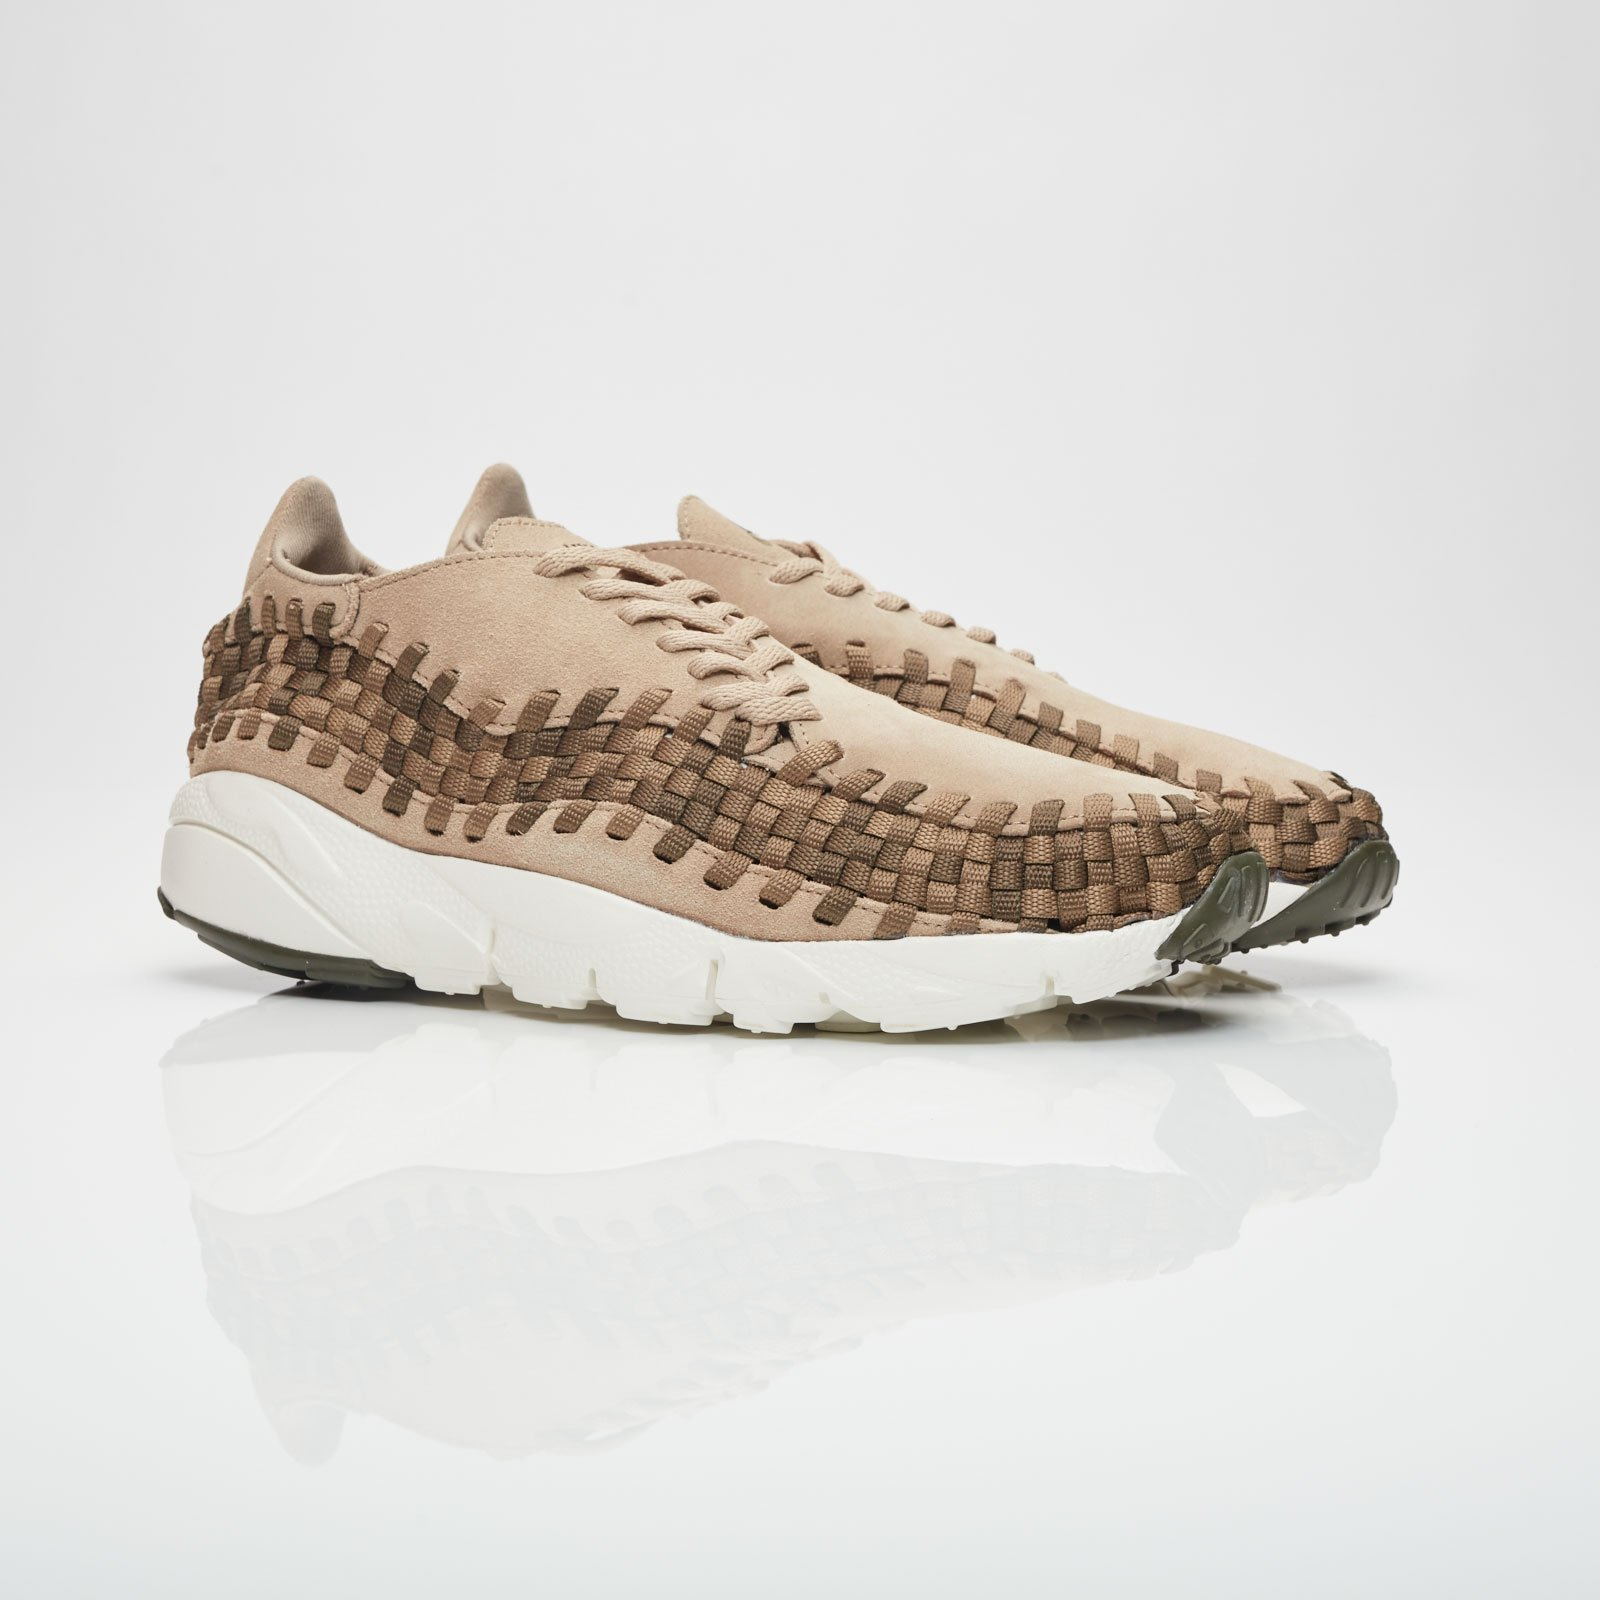 fb25905651 Nike Air Footscape Woven NM - 875797-200 - Sneakersnstuff